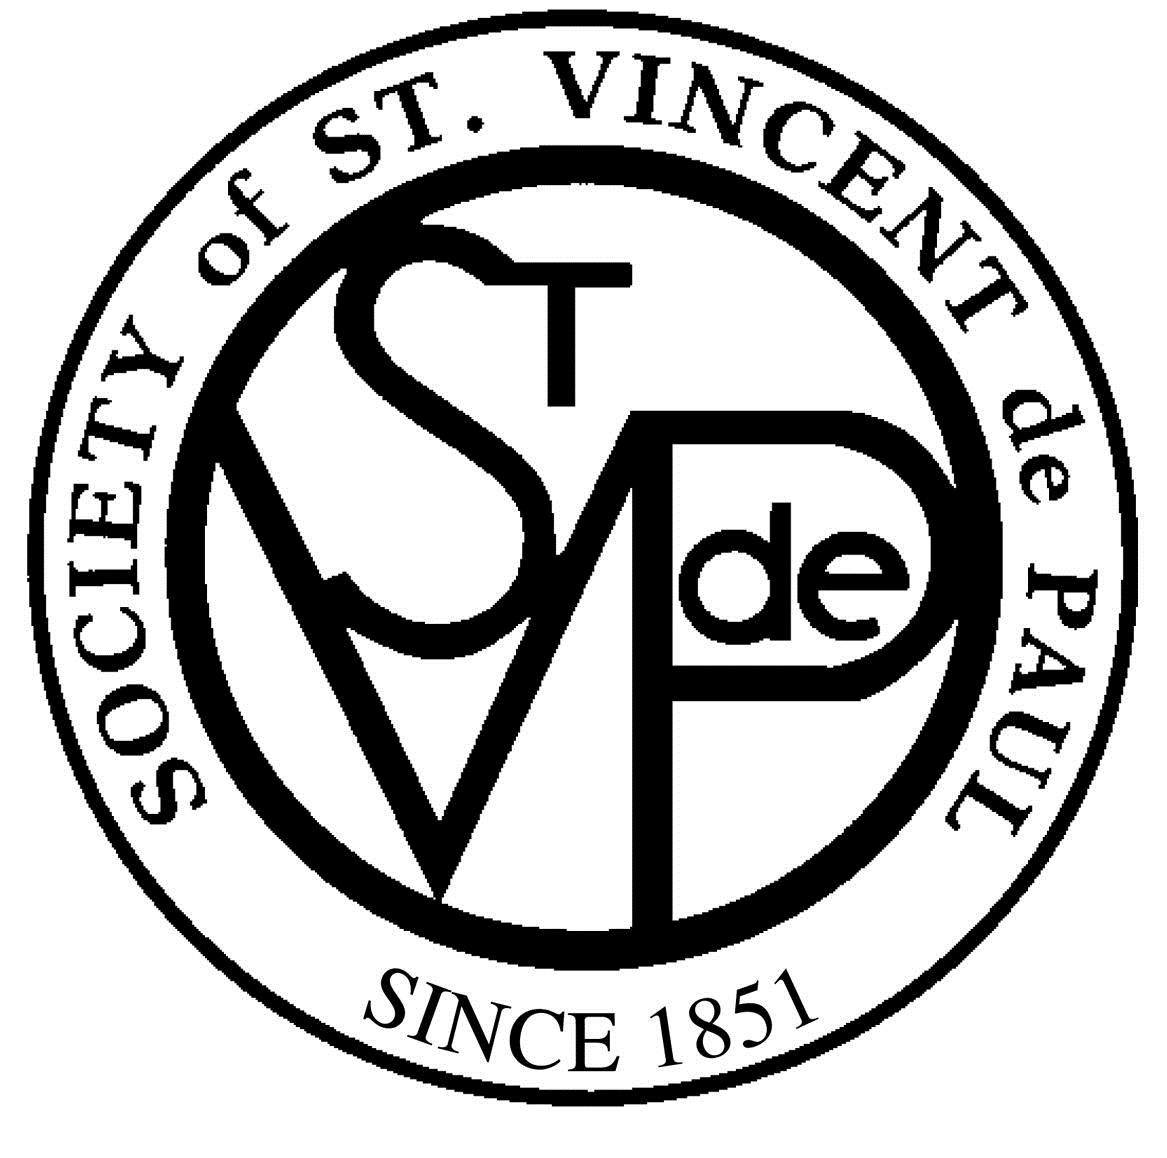 St. Vincent de Paul.